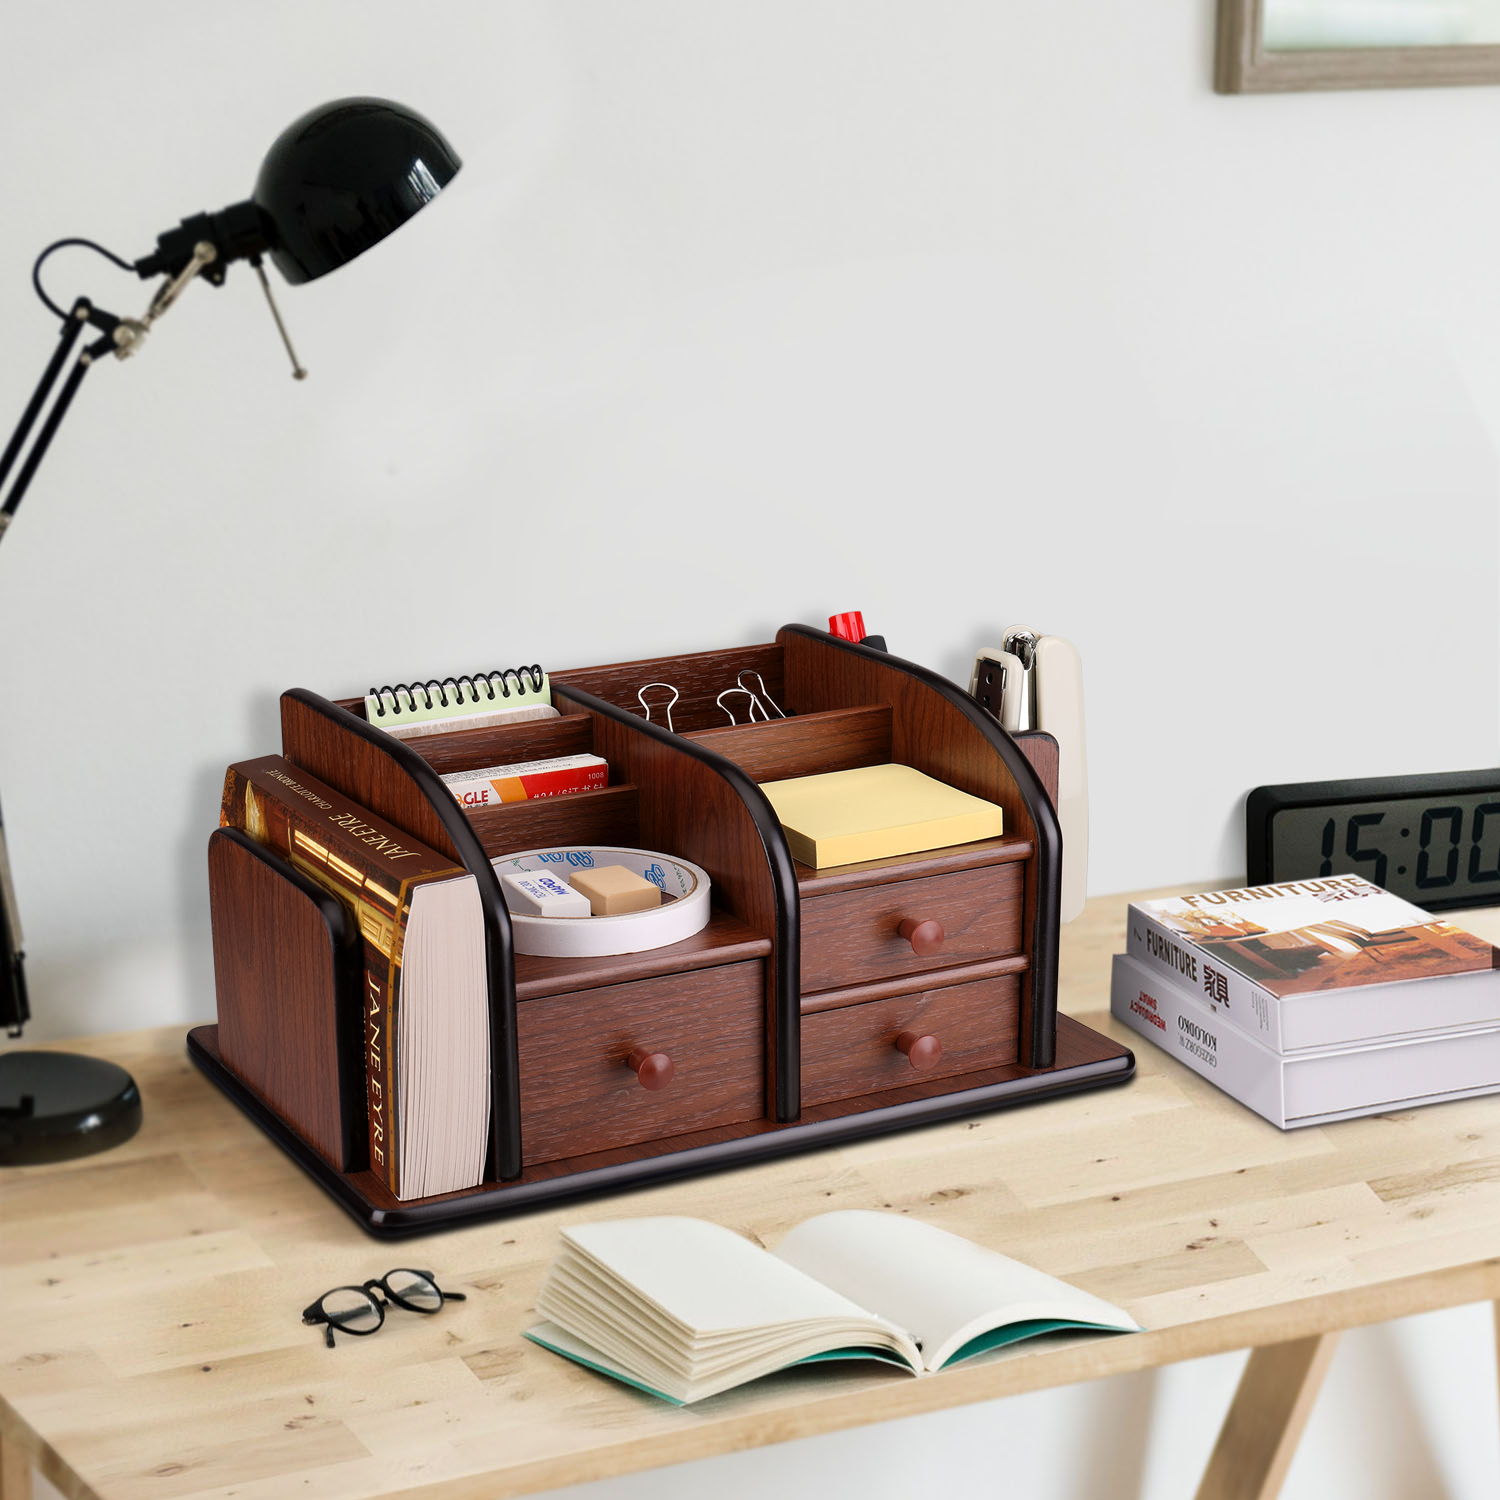 Decorate your desktop with this well-designed caddy; A smooth coating feels great to the touch and the rounded edges and trim enhance the visual appeal; Soft non-slip rubber gripper pads on the bottom to protect your desk as well as the organizer itself